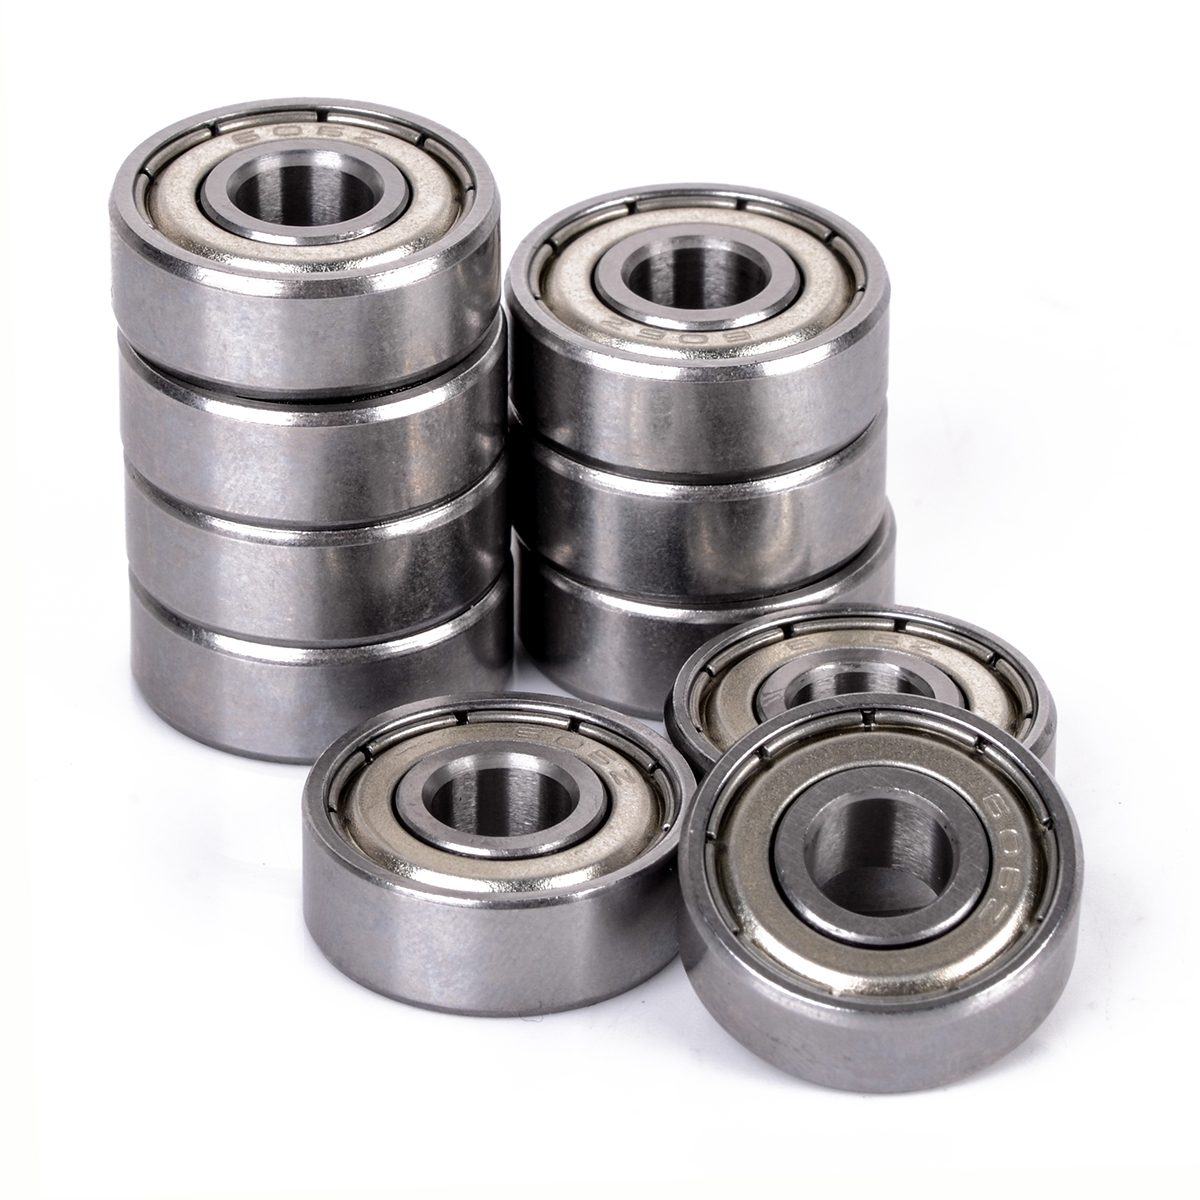 10pcs High Precision  606 ZZ Bearing Metal Miniature Deep Groove Shielded Ball Bearings 6x17x6 mm For Small Motors